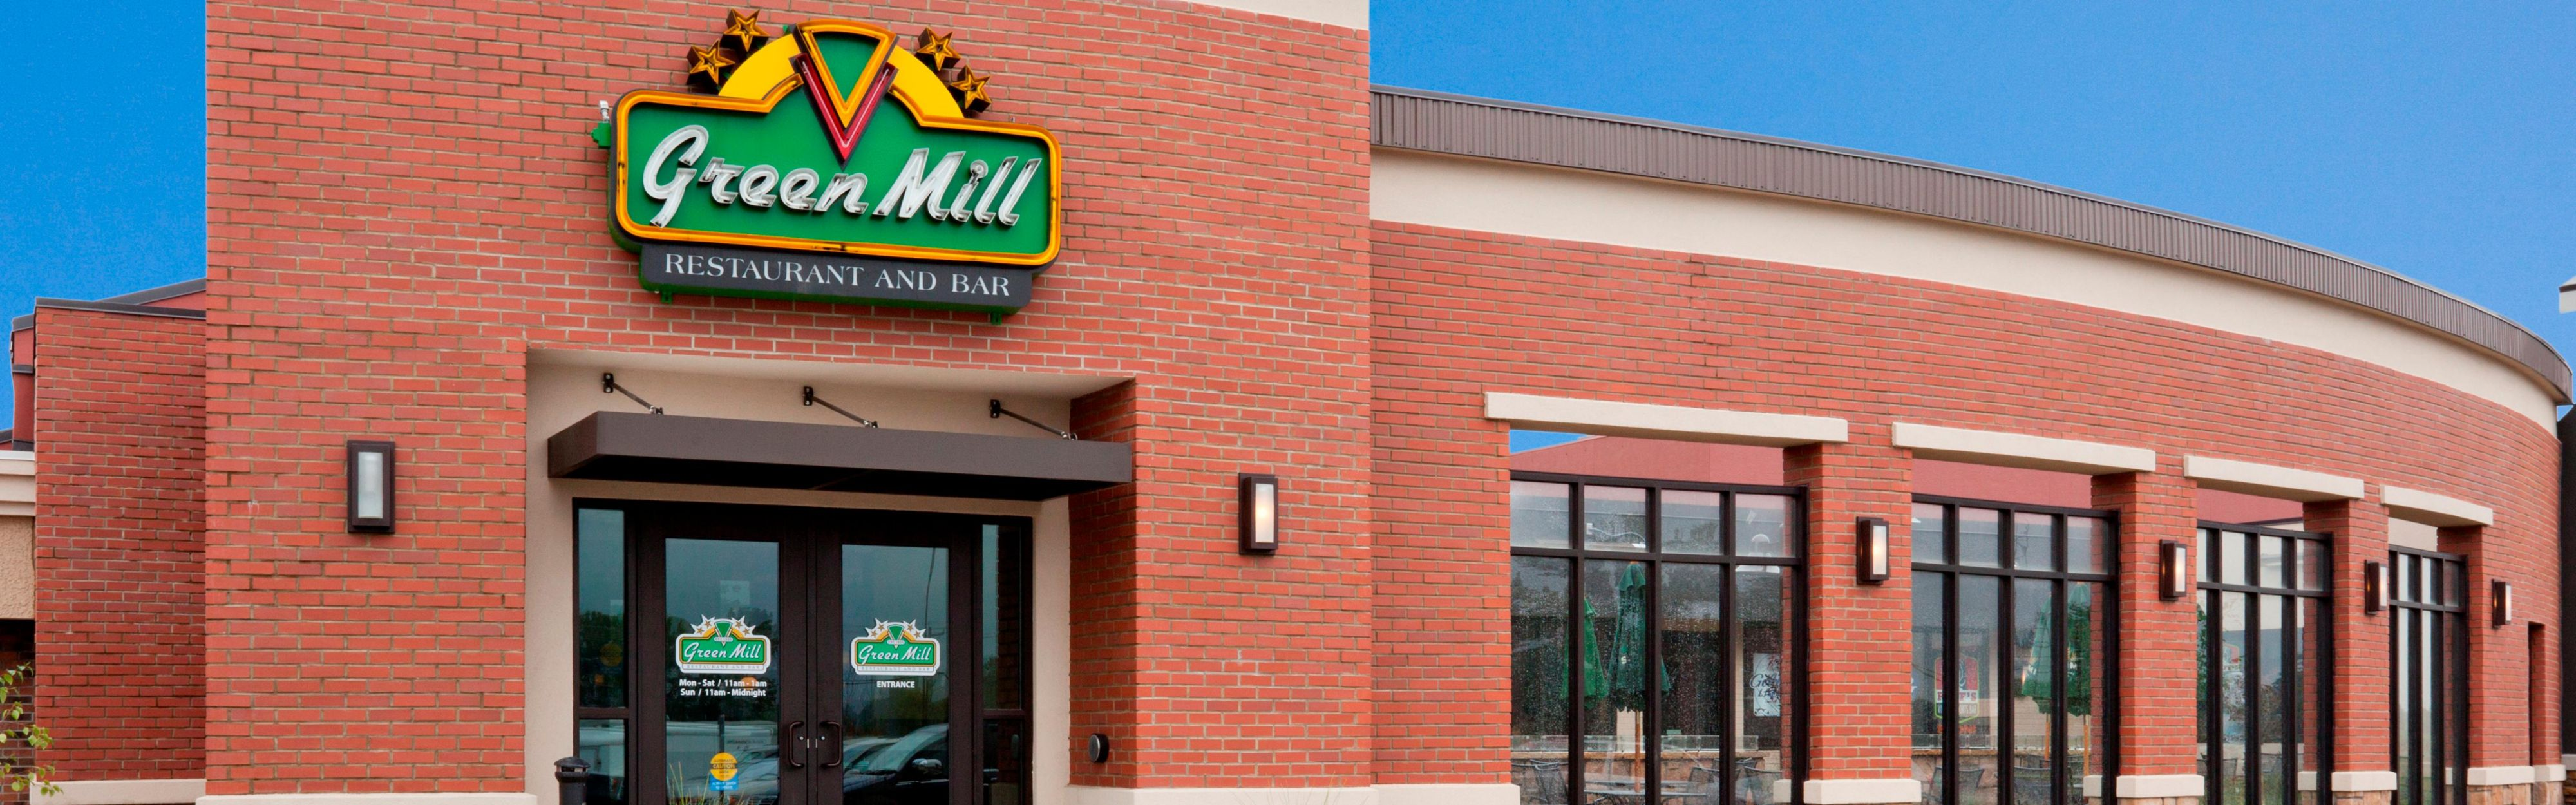 Holiday Inn Express & Suites Willmar image 3